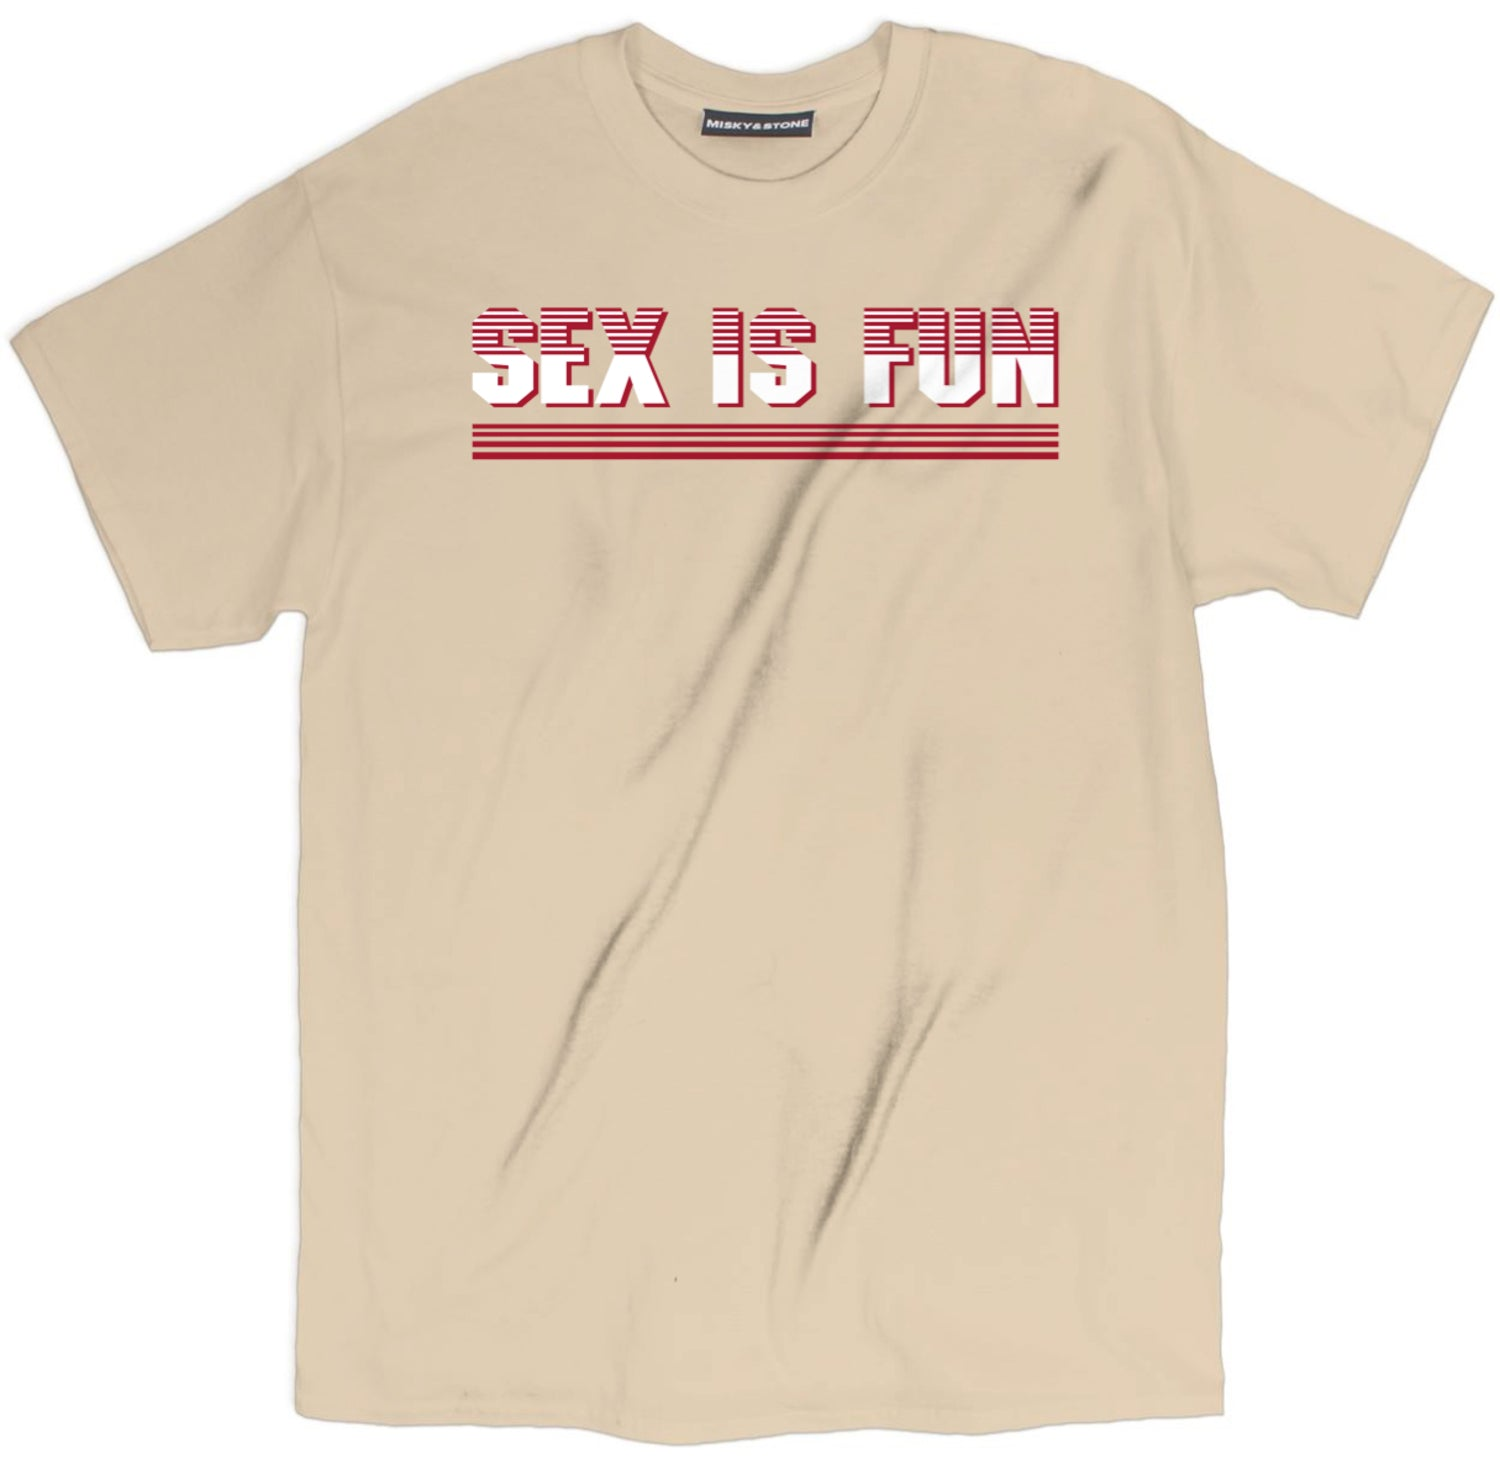 Sex Is Fun Shirt